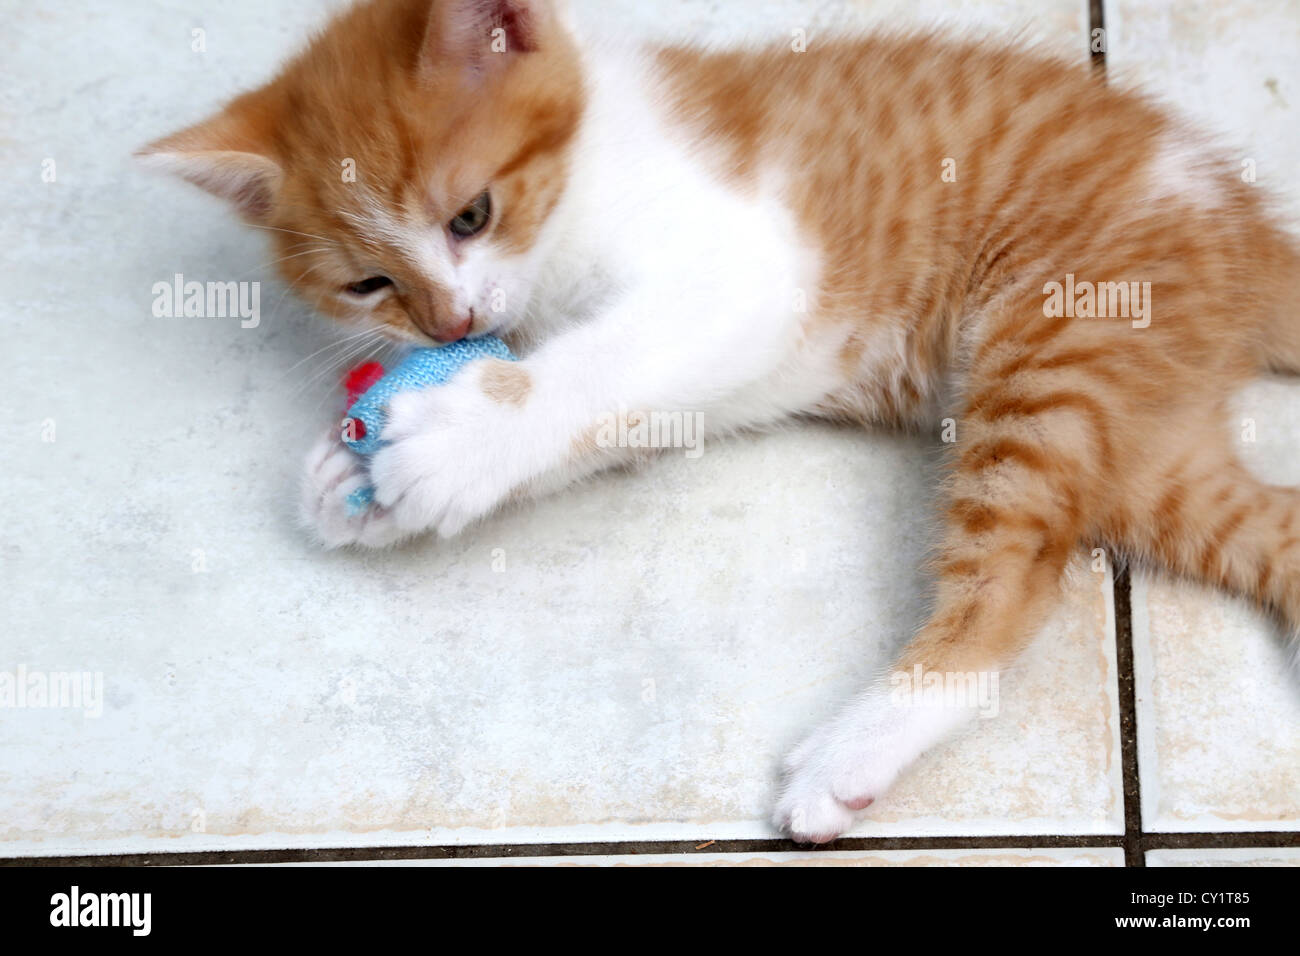 Ginger And White Kitten Playing With Toy Mouse Stock Photo